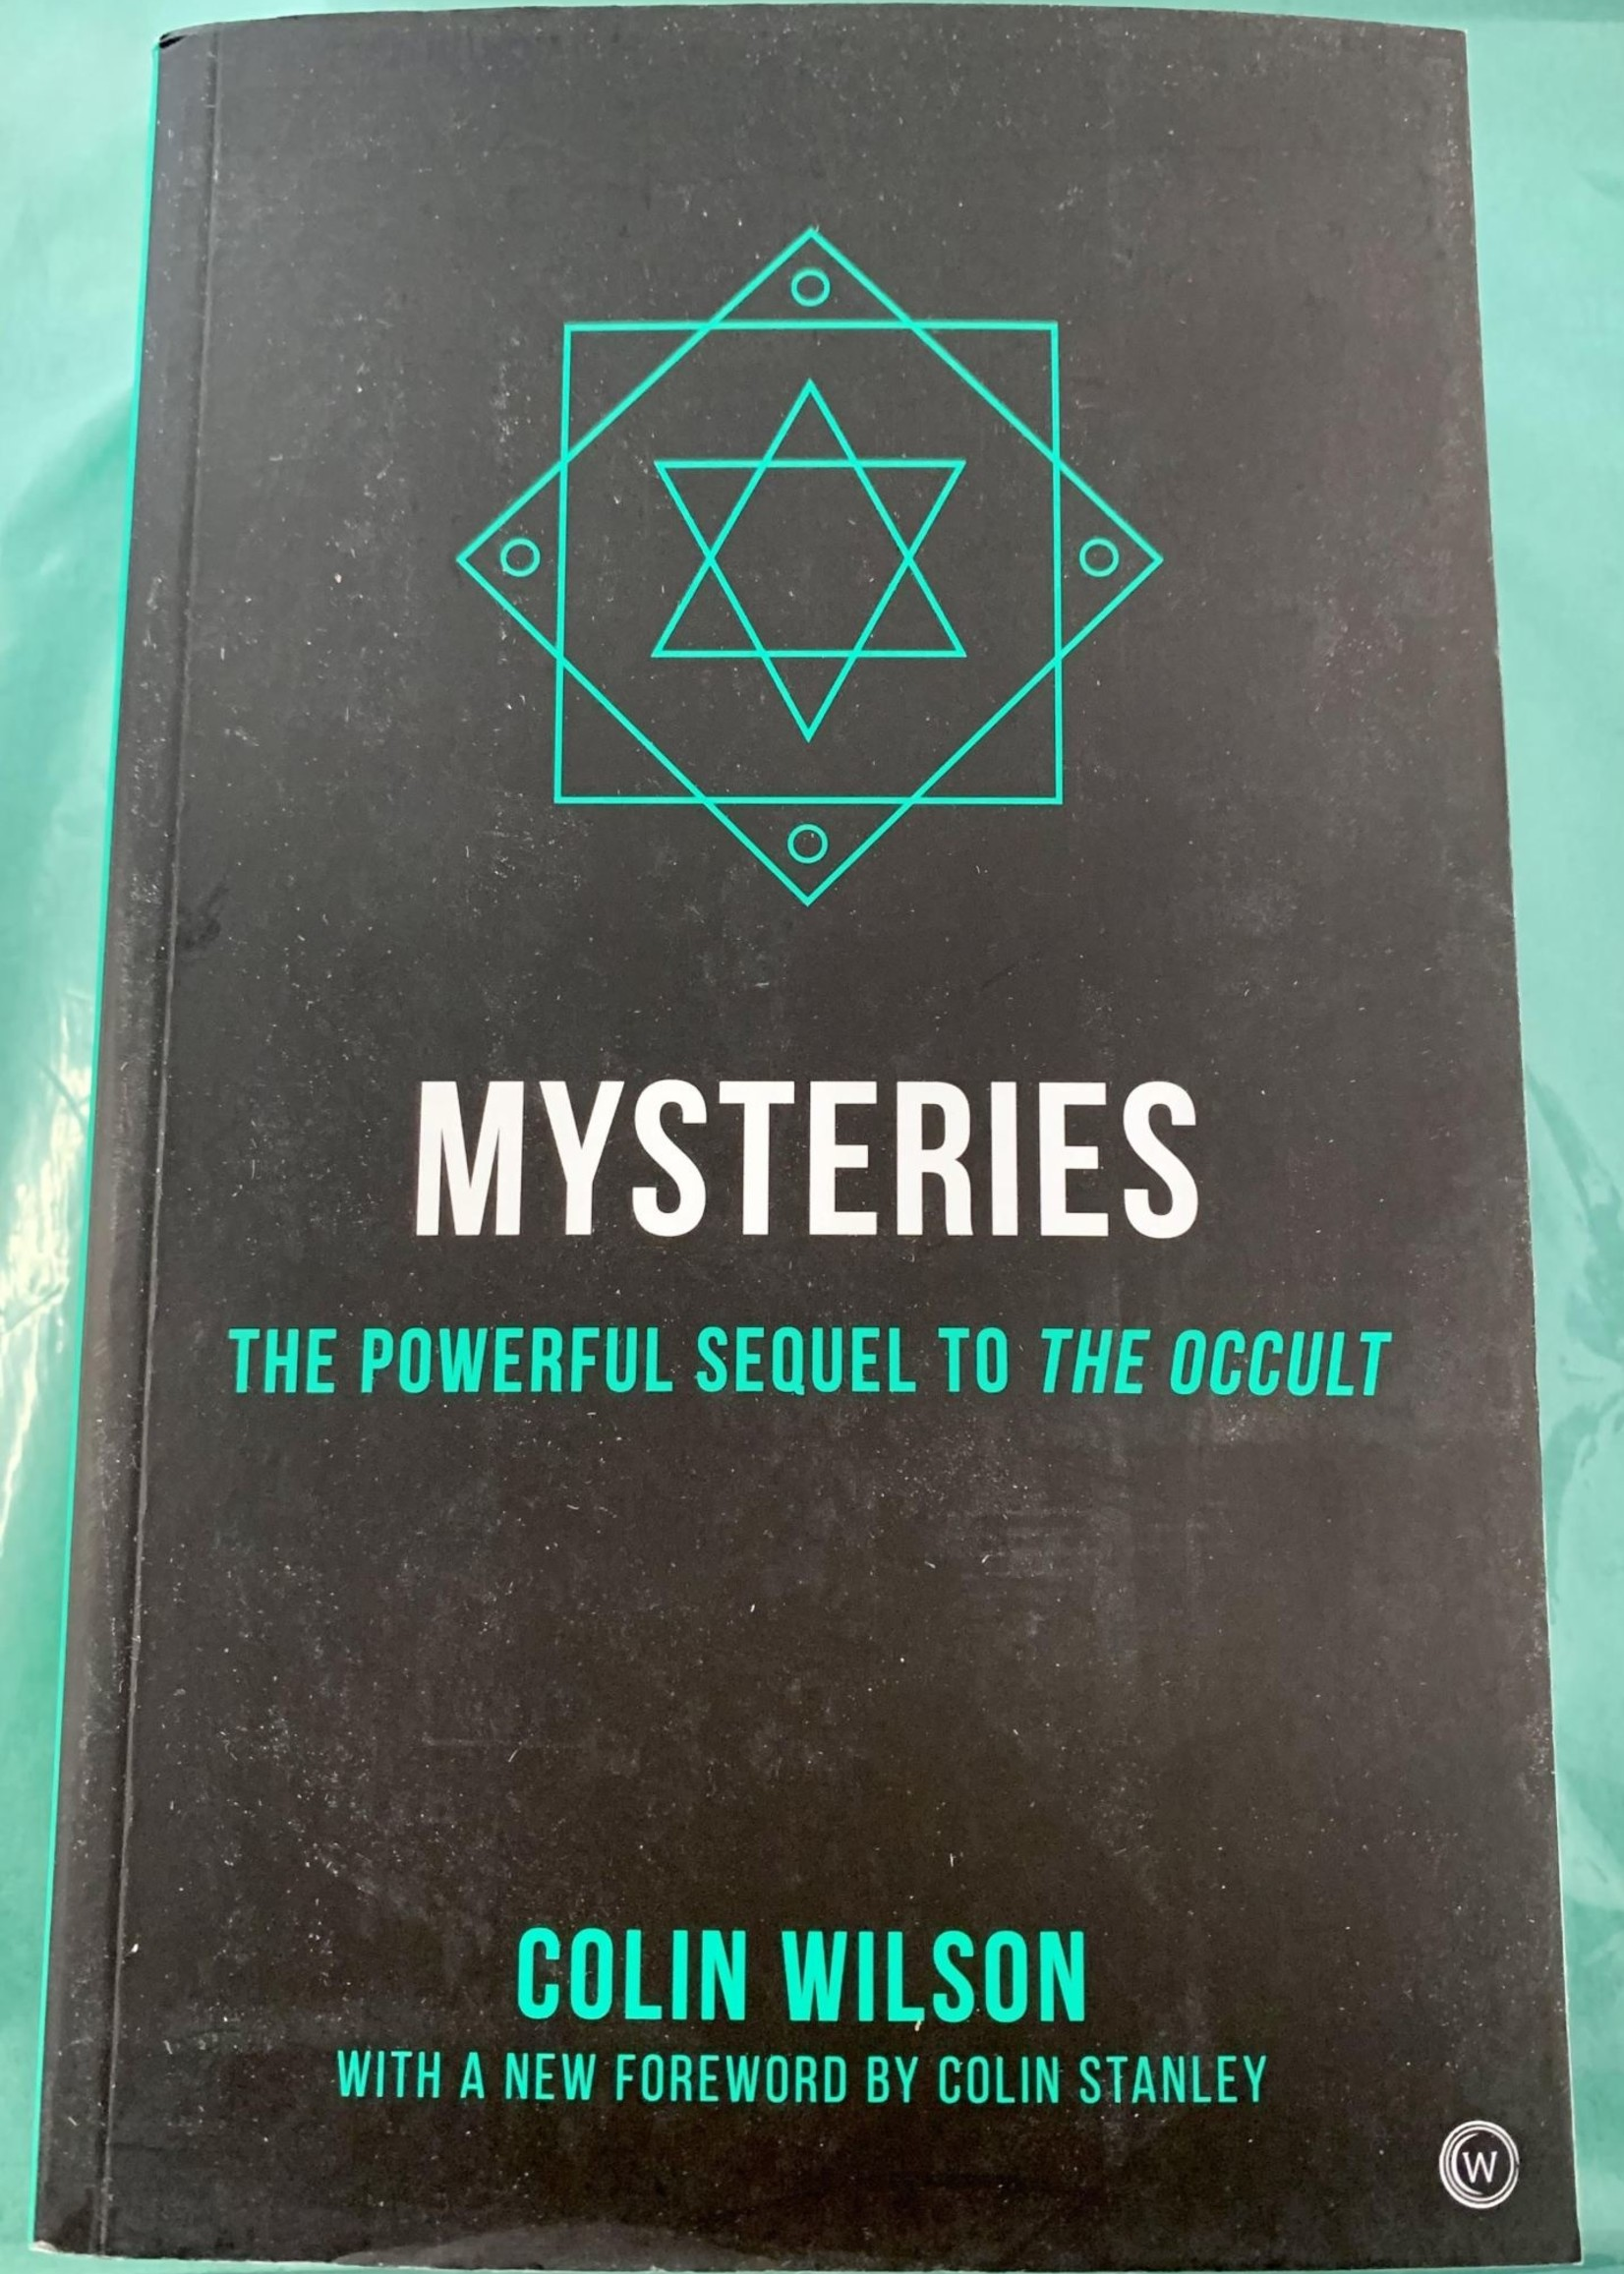 Mysteries THE POWERFUL SEQUEL TO THE OCCULT - By COLIN WILSON